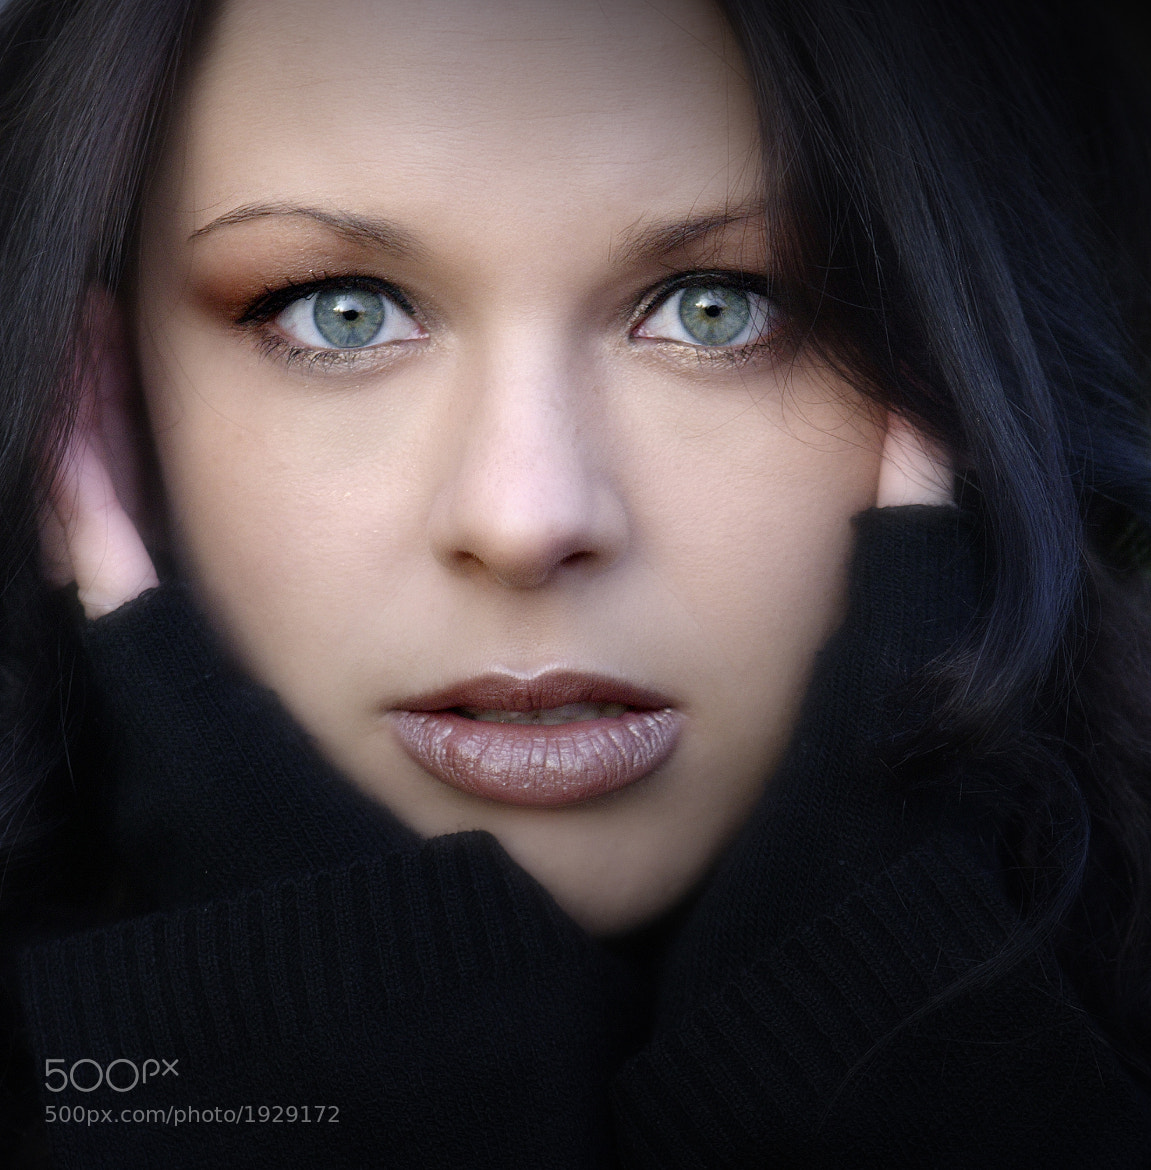 Photograph Face by Sonja Tietze on 500px